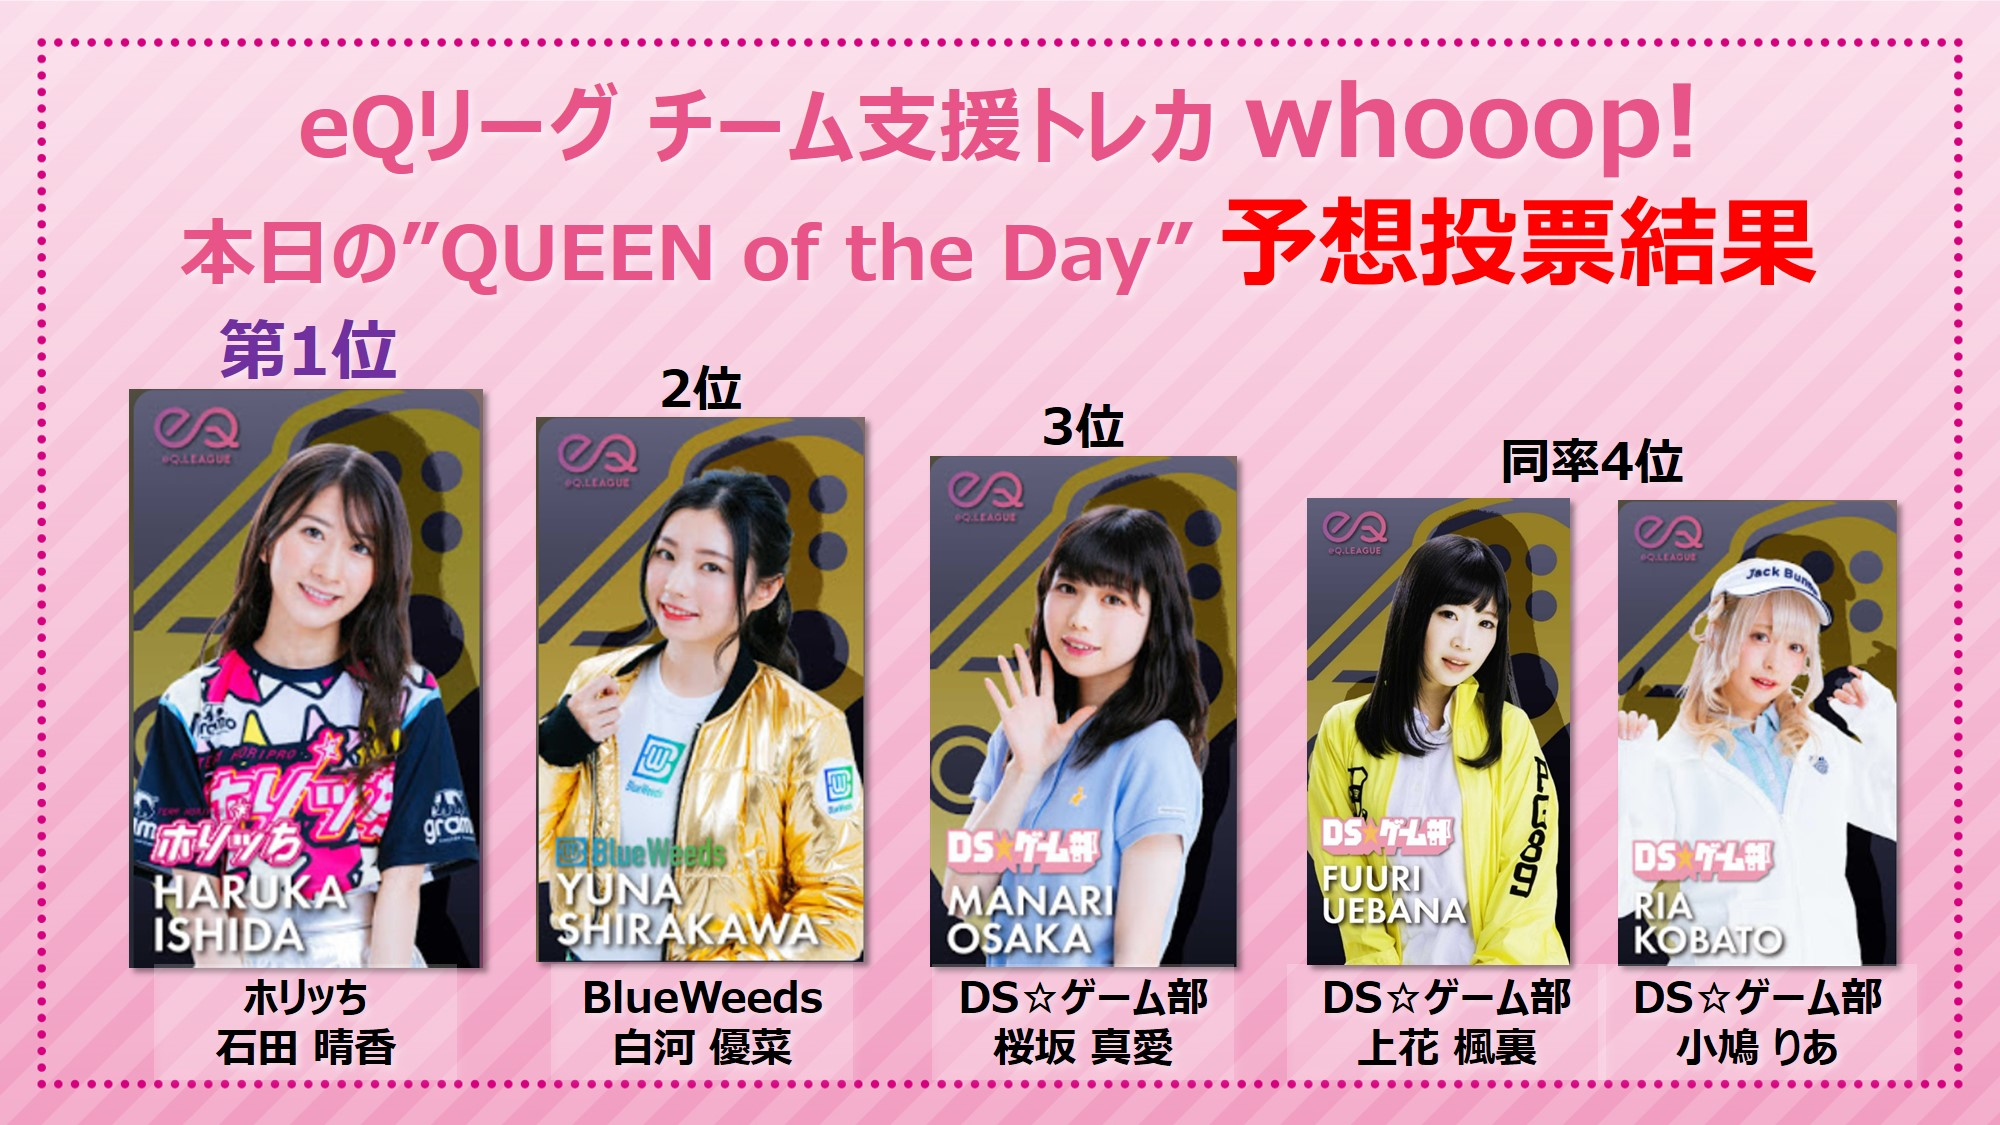 eQリーグ 1stシーズンDay3_QUEEN of the Day予想イベント結果